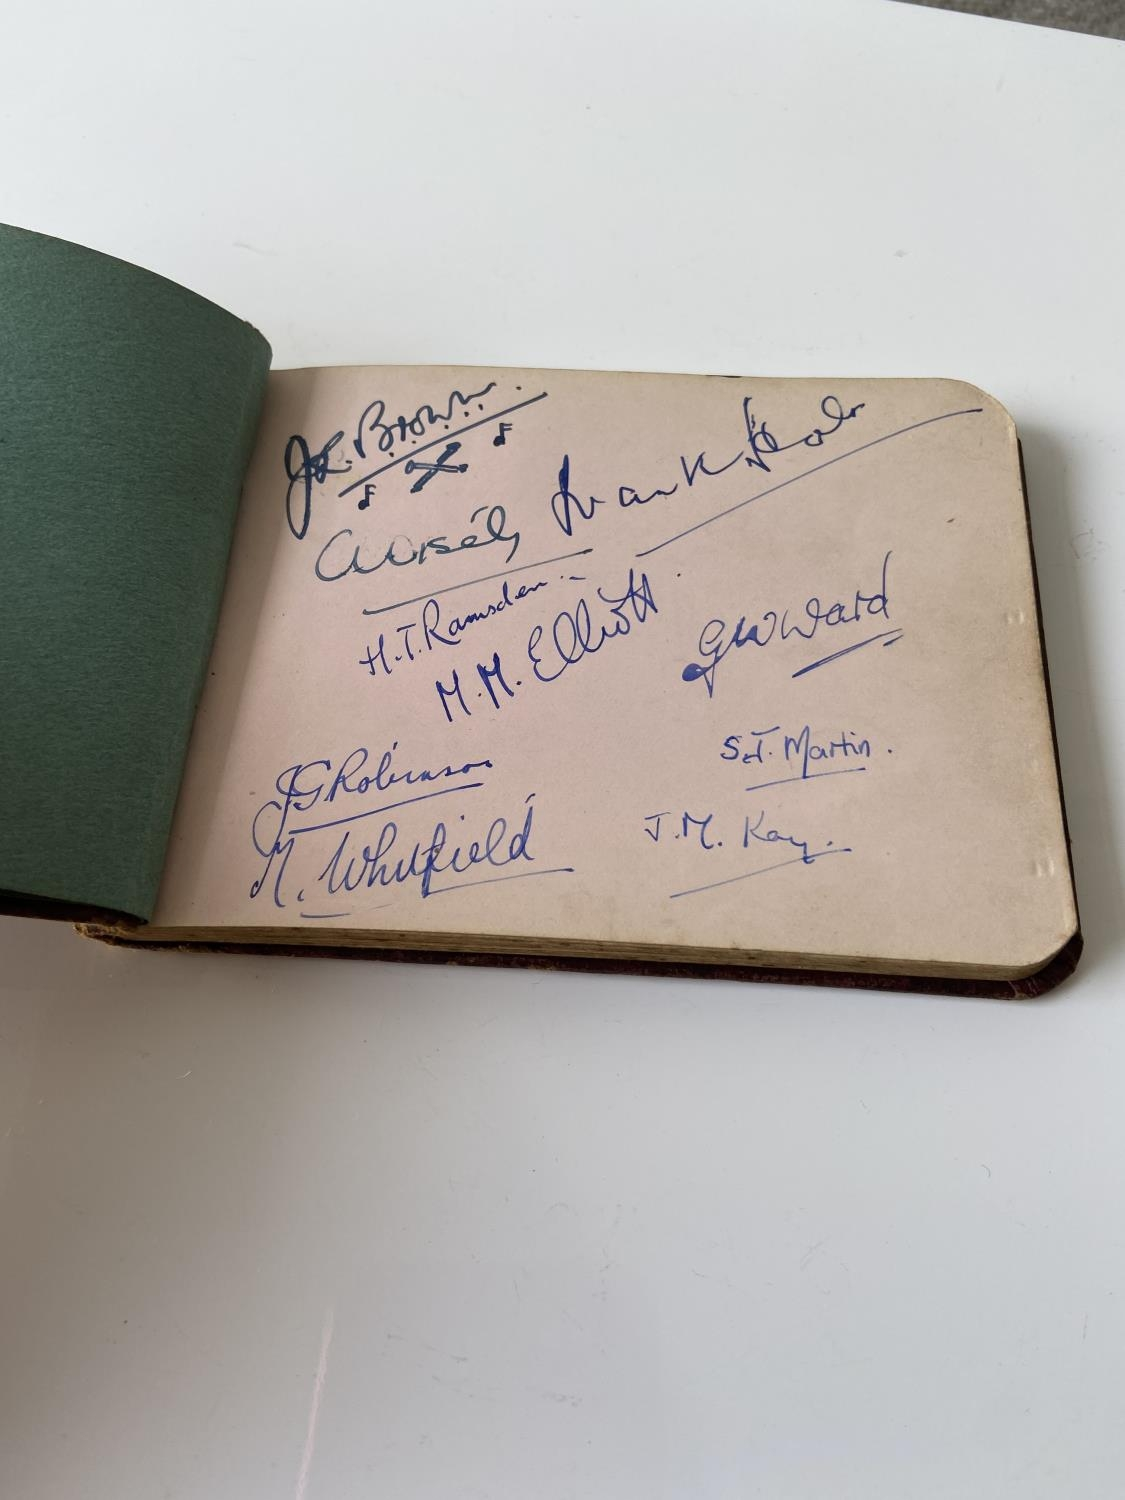 An old autograph album containing various poems, sayings & doodles - Image 3 of 18